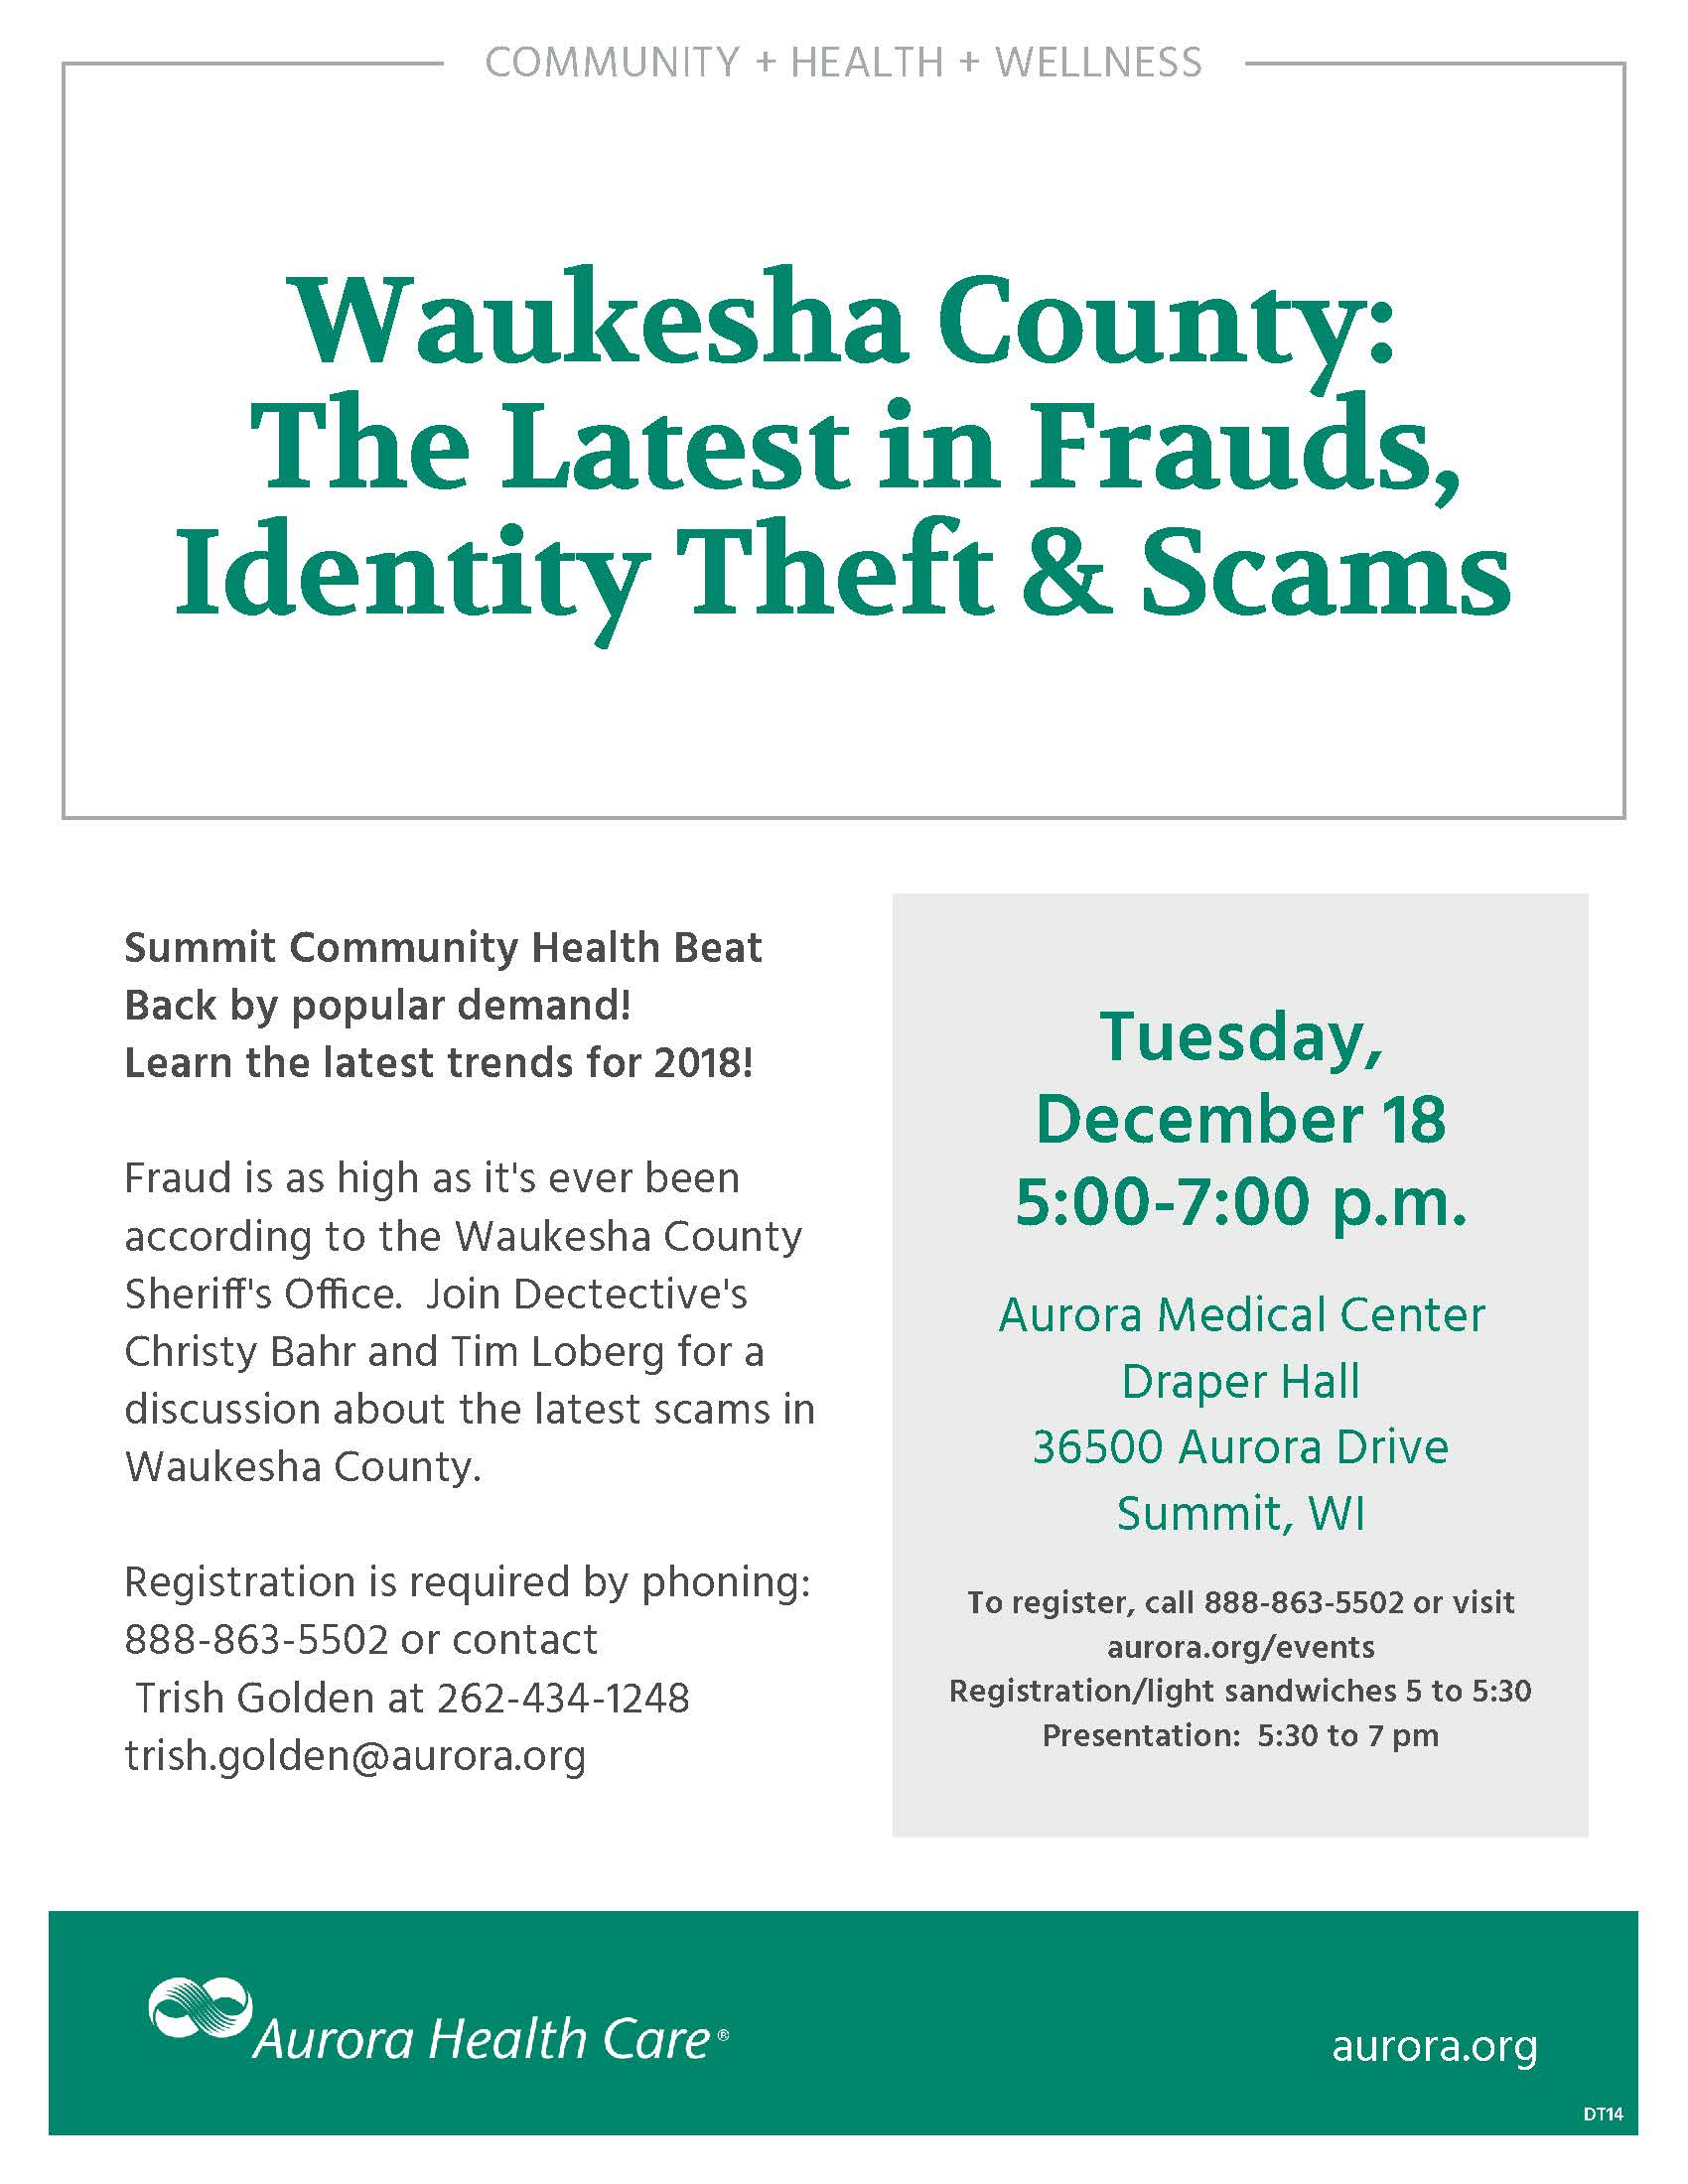 Waukesha County The Latest In Frauds Ideny Theft Scams